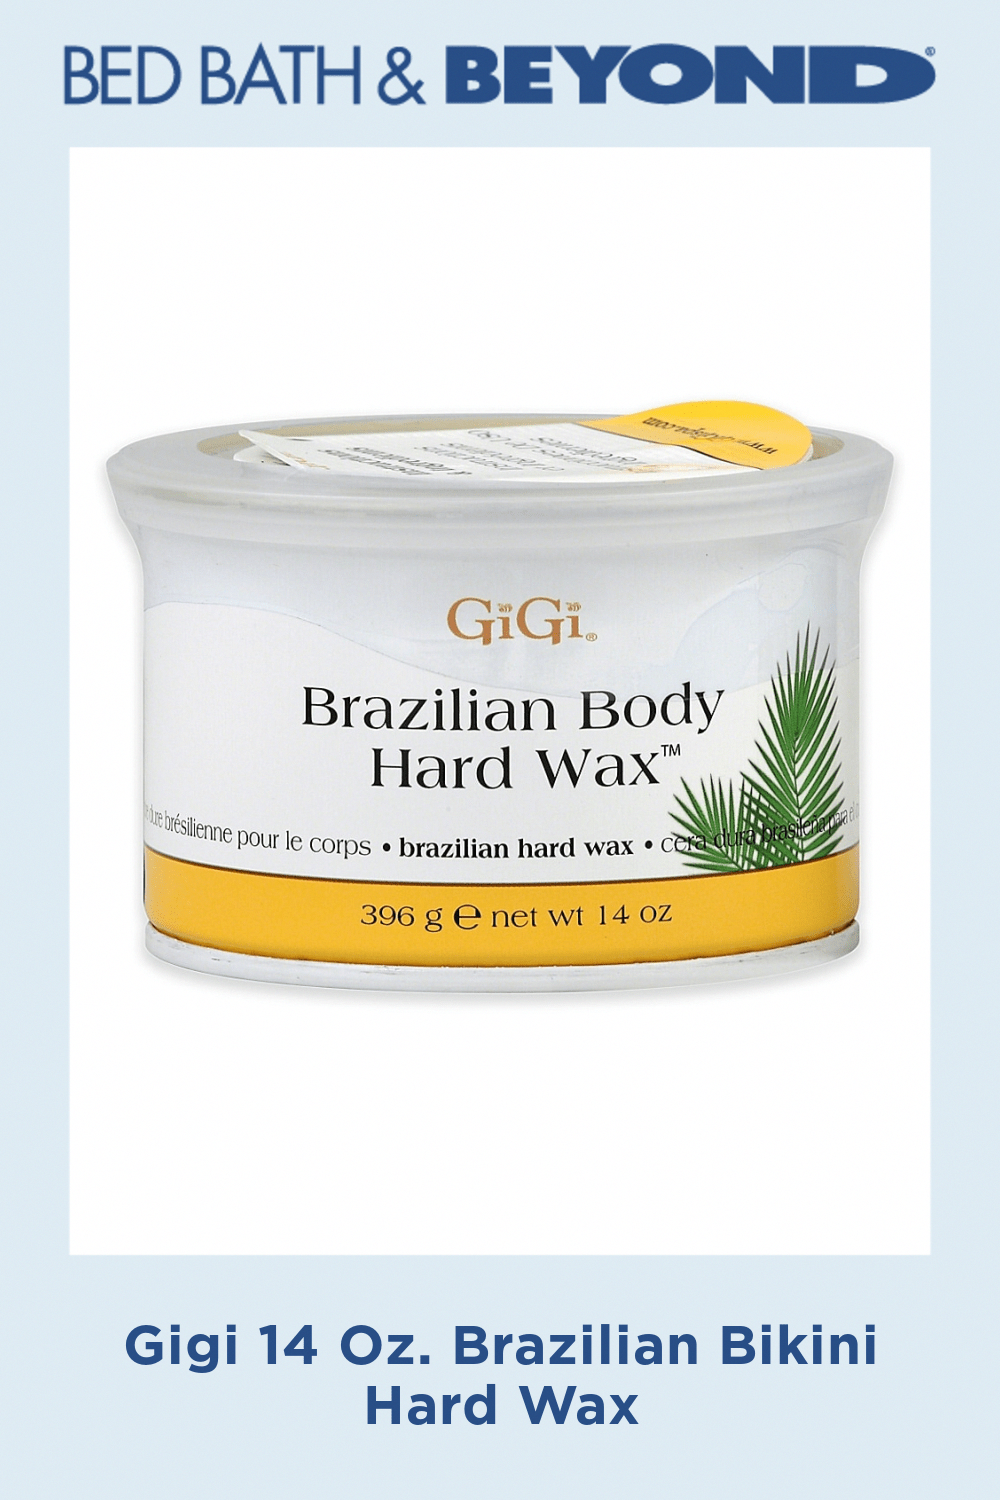 Gigi 14 Oz. Brazilian Bikini Hard Wax LegHairRemoval in